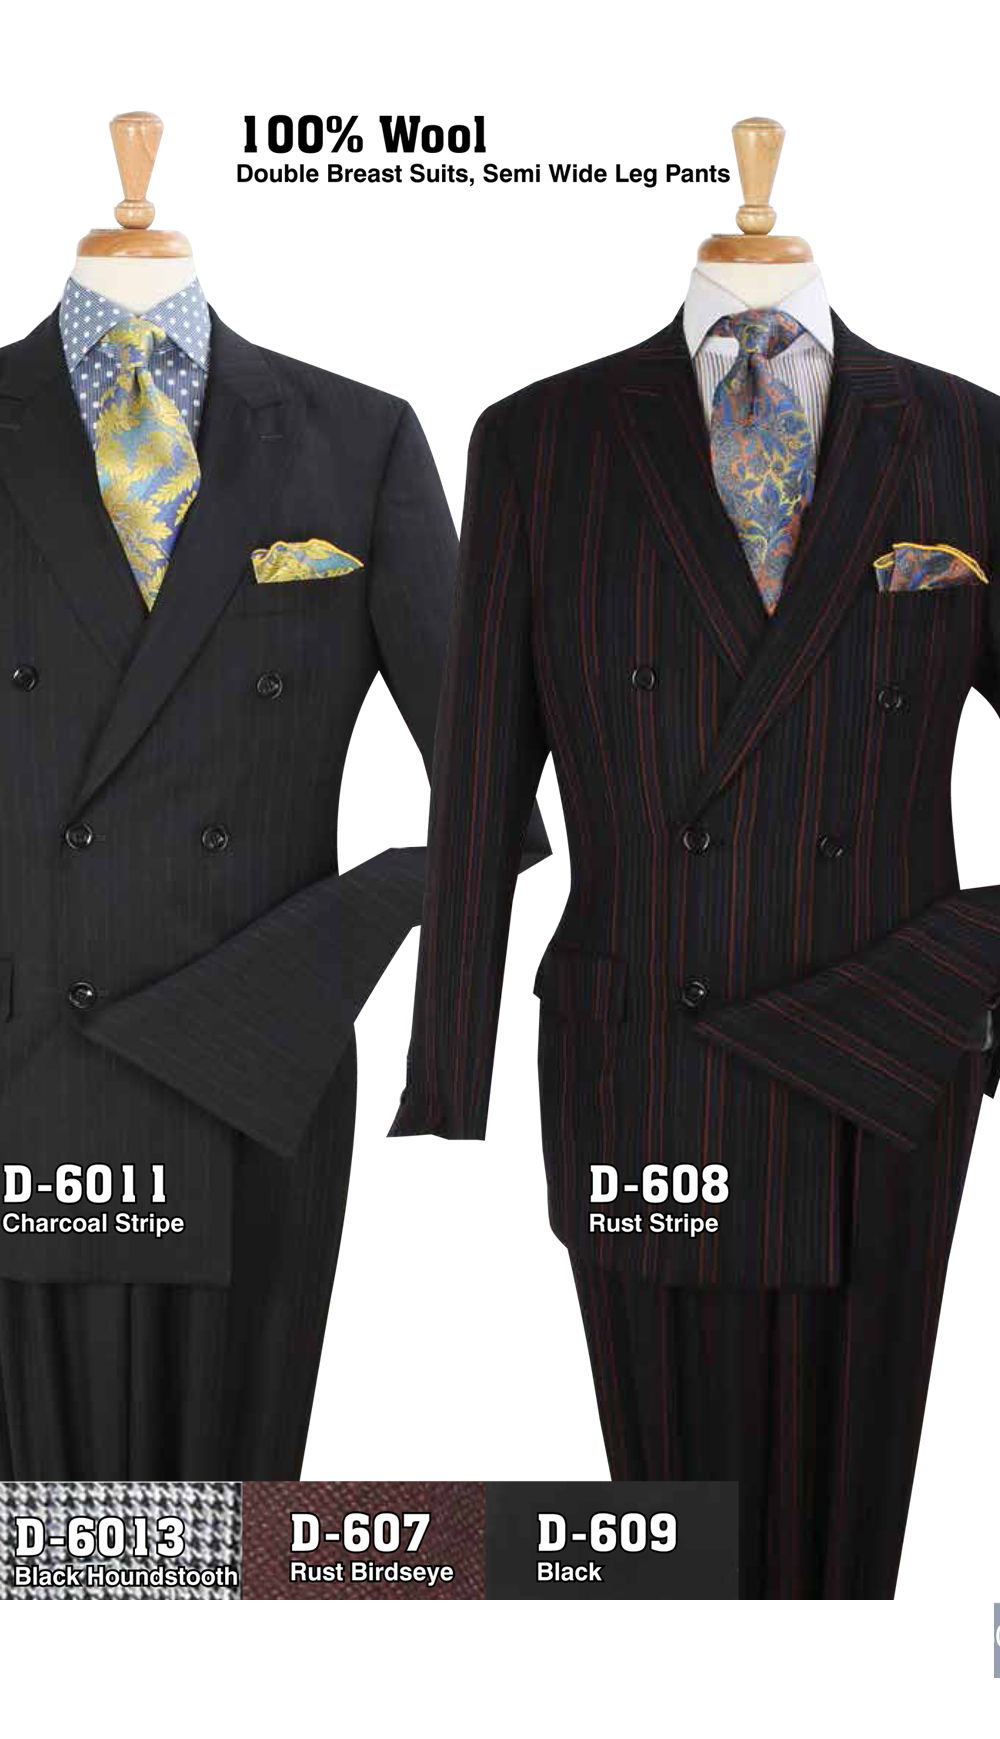 High Fashion Men Suits D-6011